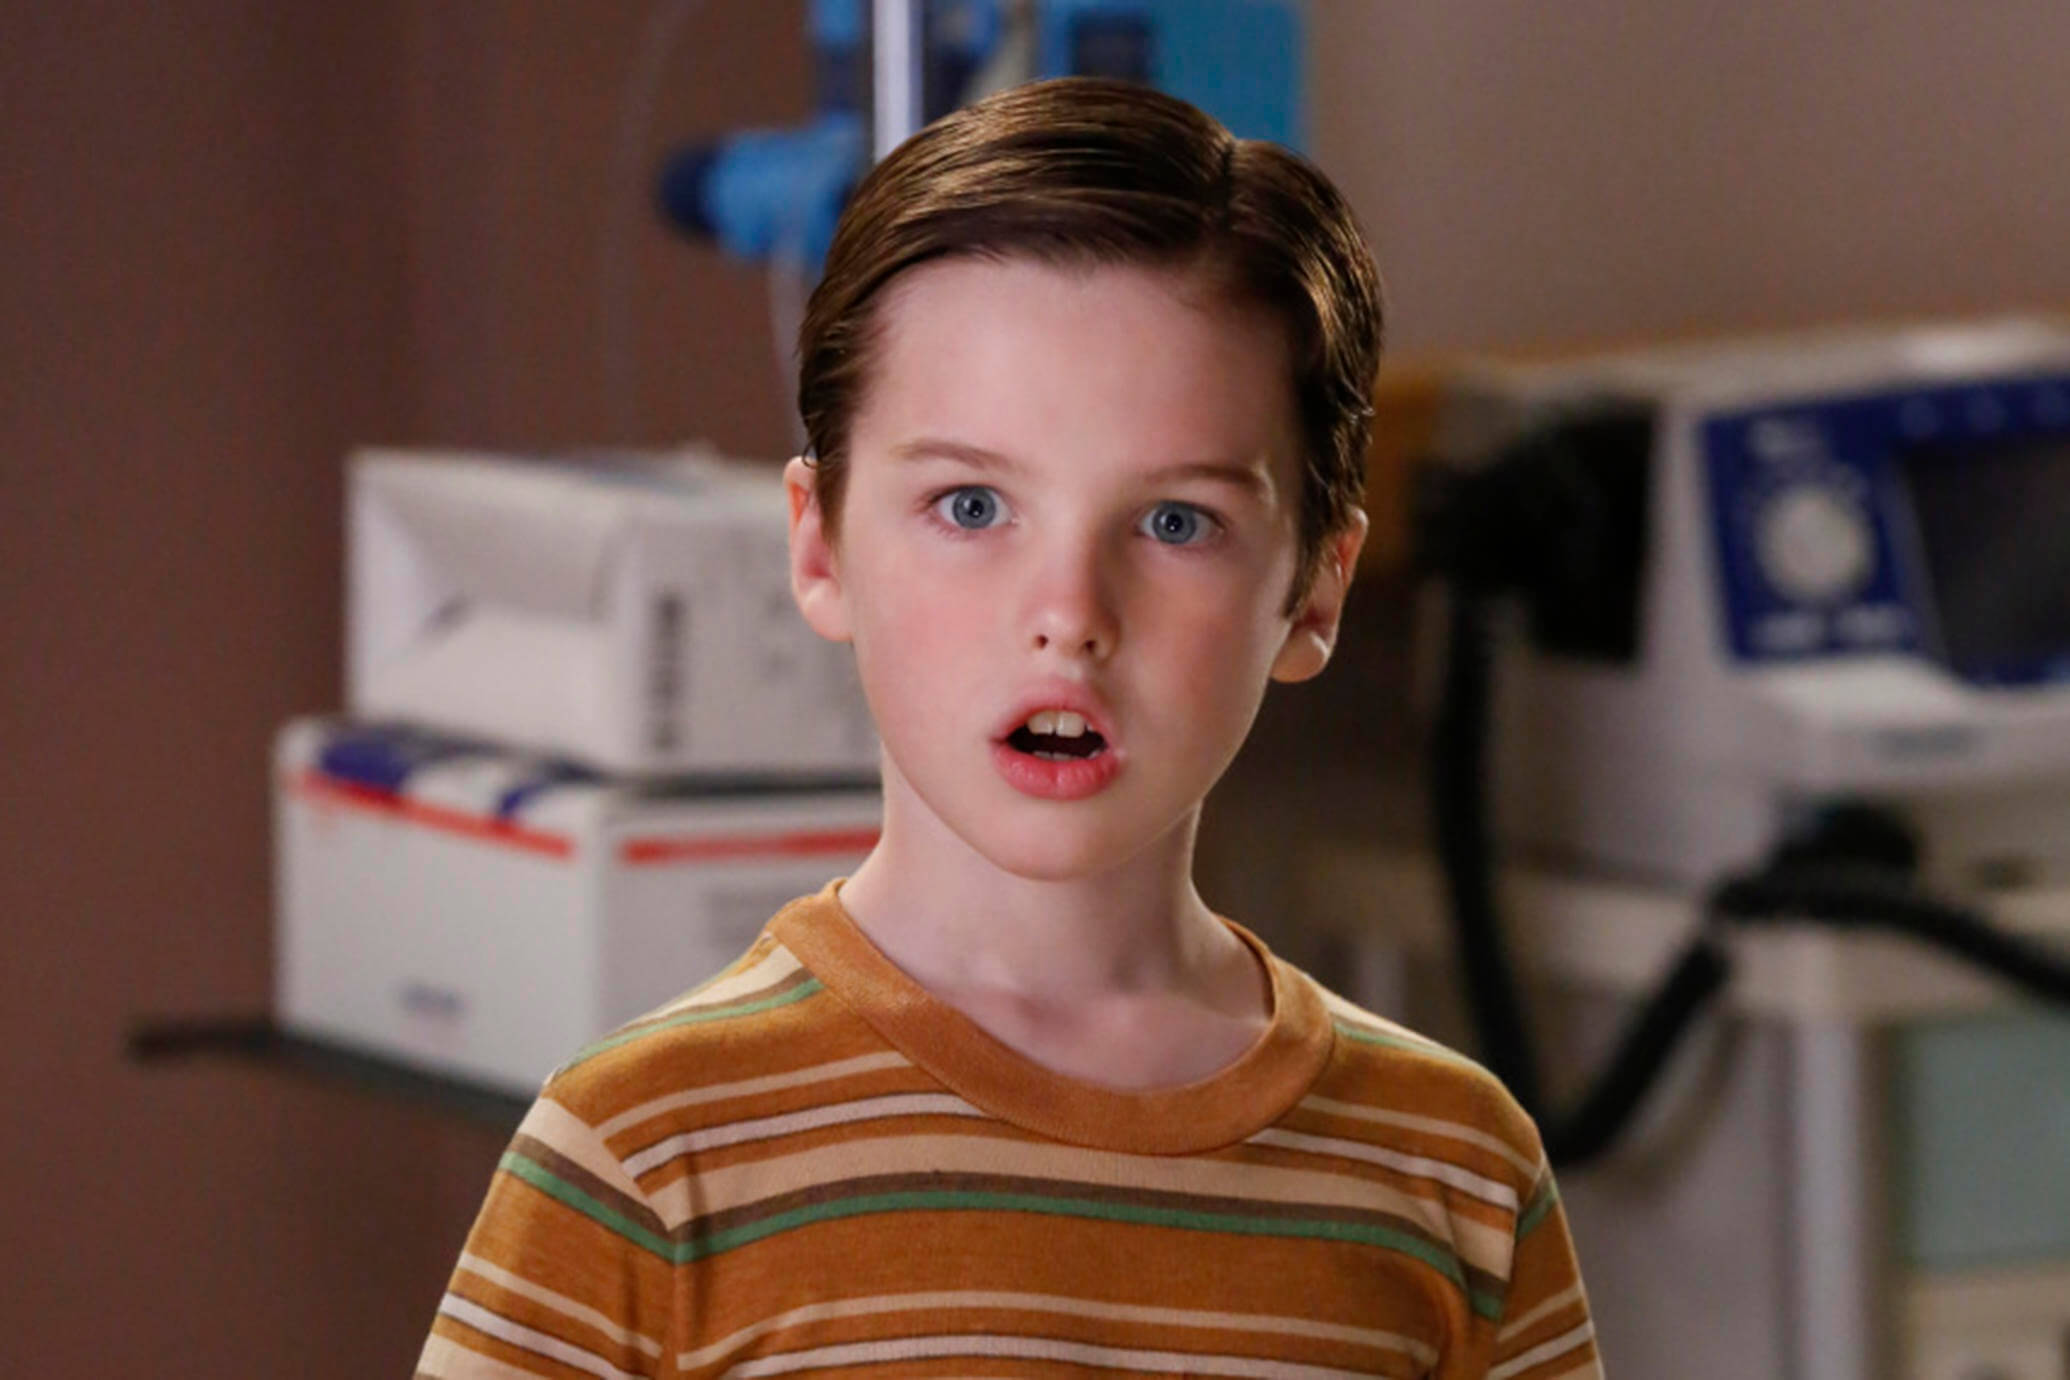 """Poker, Faith, and Eggs""-- Pictured: Sheldon (Iain Armitage). When George Sr. is rushed to the emergency room, Meemaw (Annie Potts) comes to babysit, and the kids have an adventure getting to the hospital on their own, when YOUNG SHELDON airs, Thursday Nov. 9 (8:31-9:01 PM, ET/PT) on the CBS Television Network. Photo: Robert Voets/Warner Bros. Entertainment Inc. © 2017 WBEI. All rights reserved."